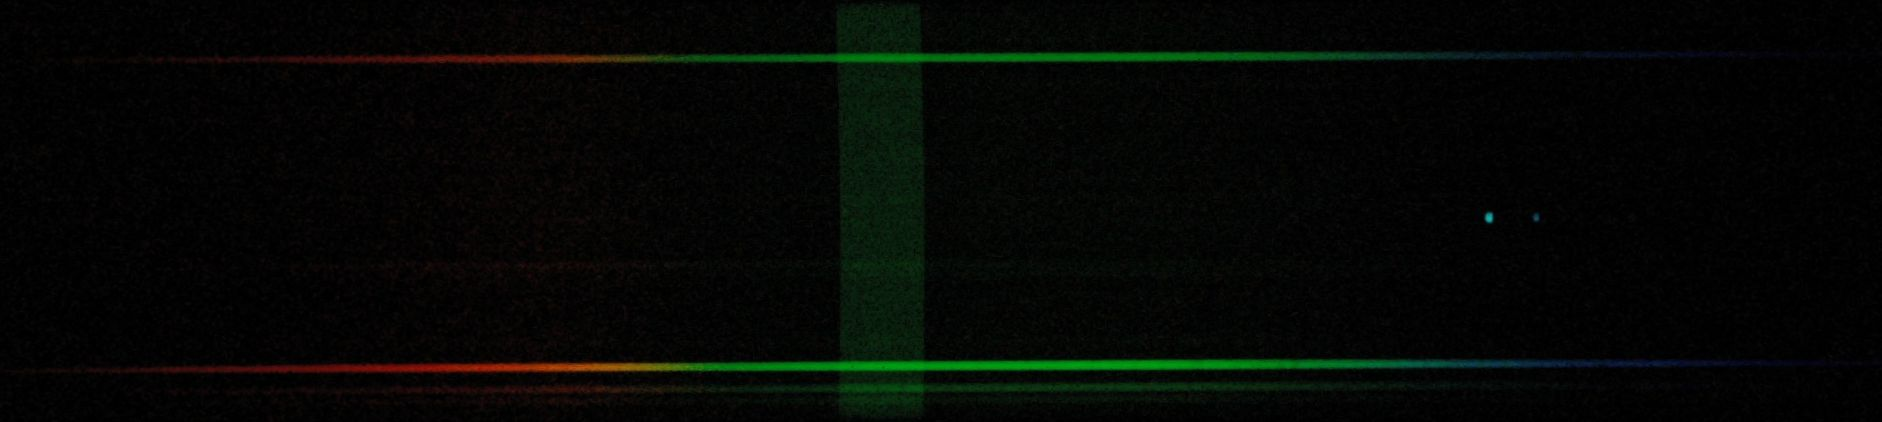 Phys508 night sky institute 2011 two stars spectrum with slit very wide open the sky glow from bend or is the vertical green band gamestrikefo Images